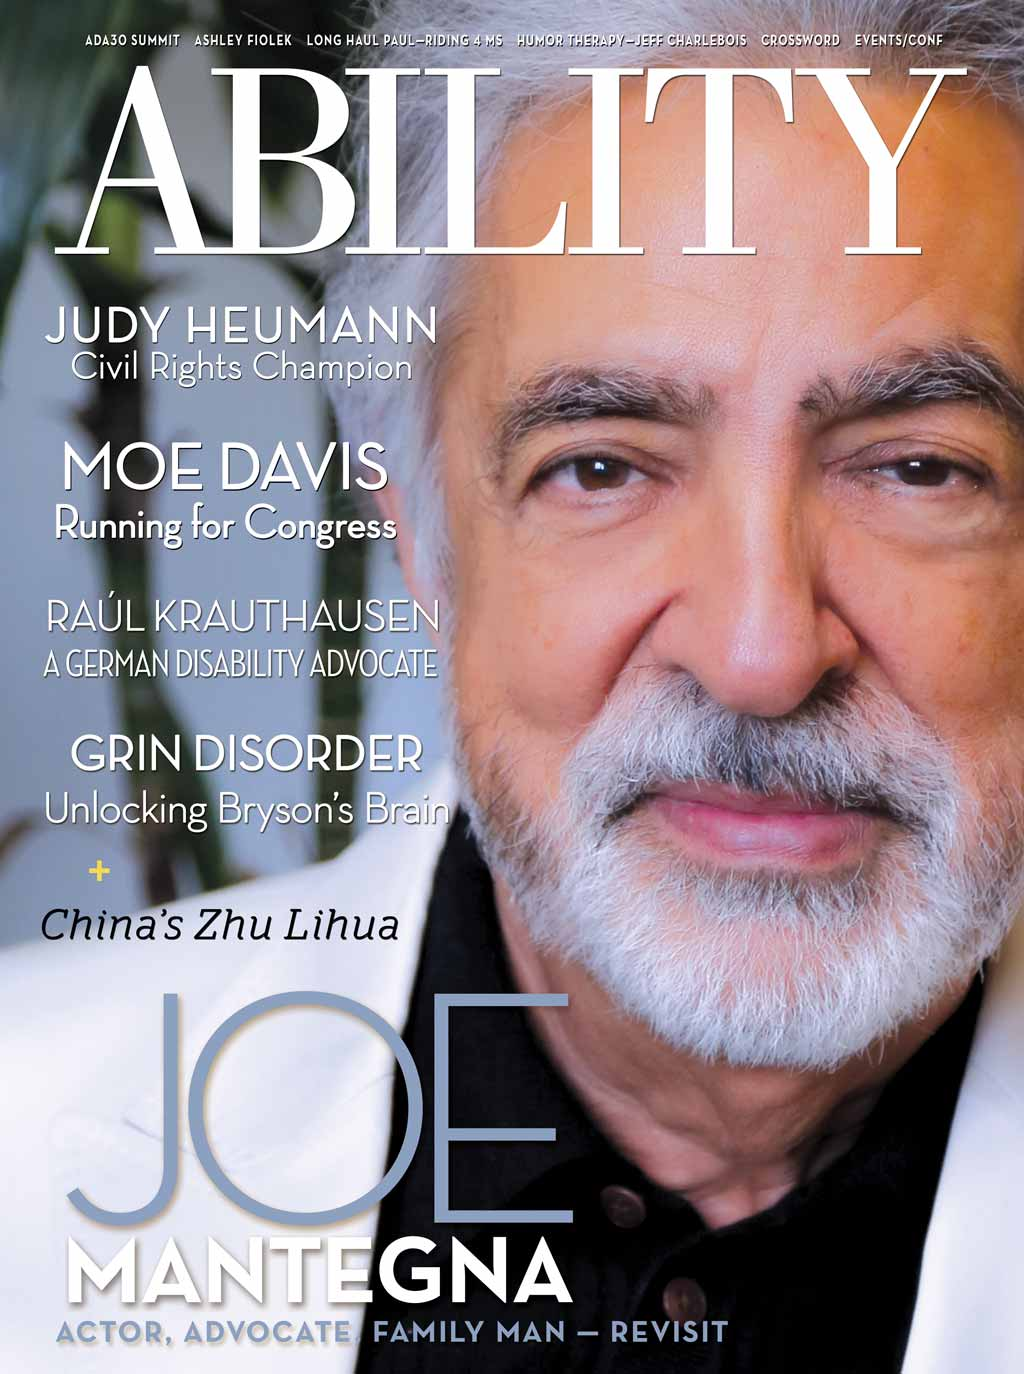 Joe Mantegna Revisit Issue